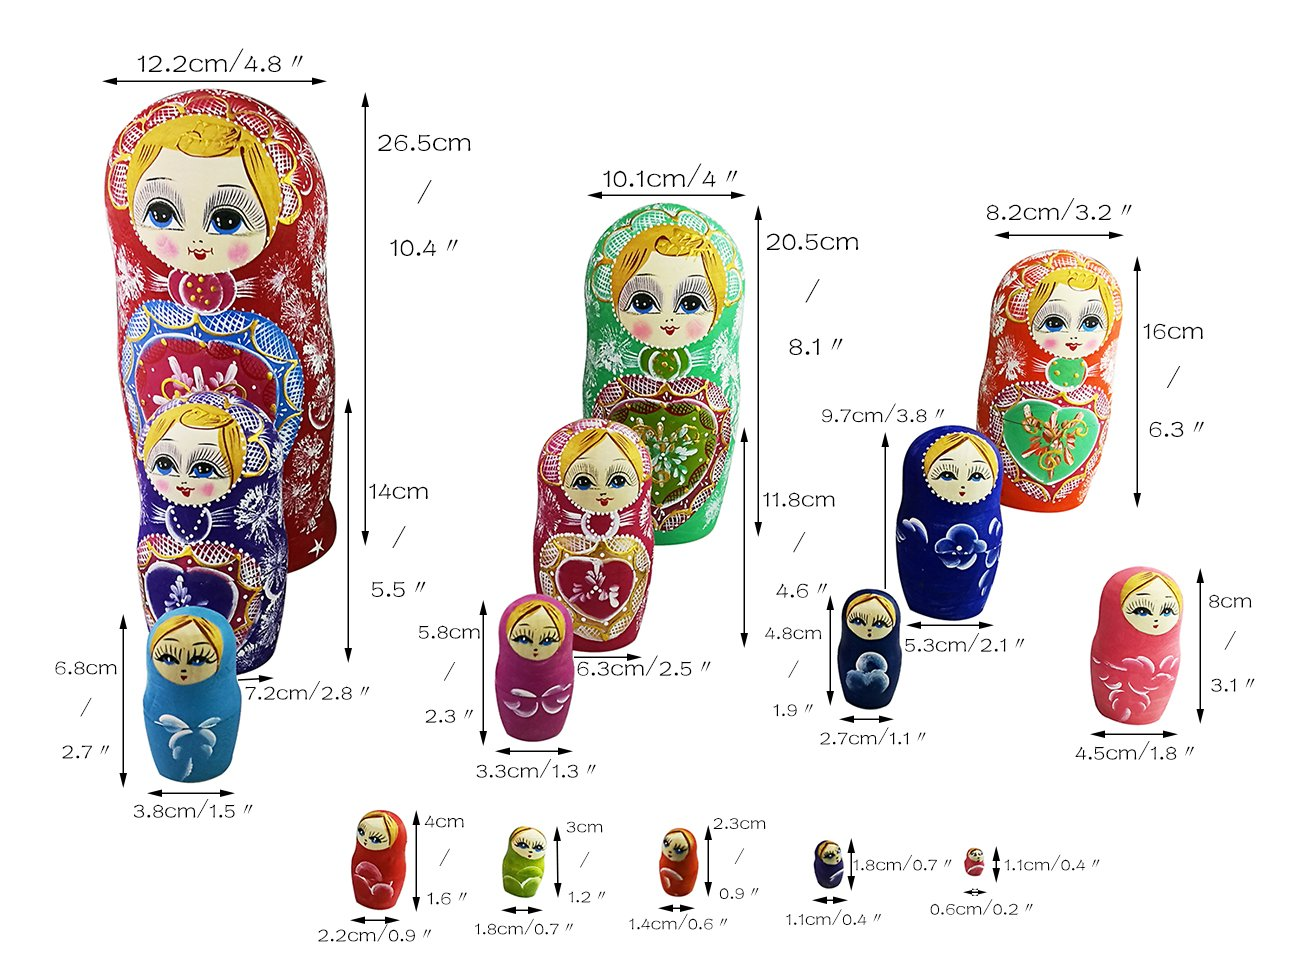 Winterworm Colorful Little Girl Heart Pattern Wooden Handmade Russian Nesting Dolls Matryoshka Dolls Set 15 Pieces for Kids Toy Birthday Home Decoration Collection by Winterworm (Image #4)